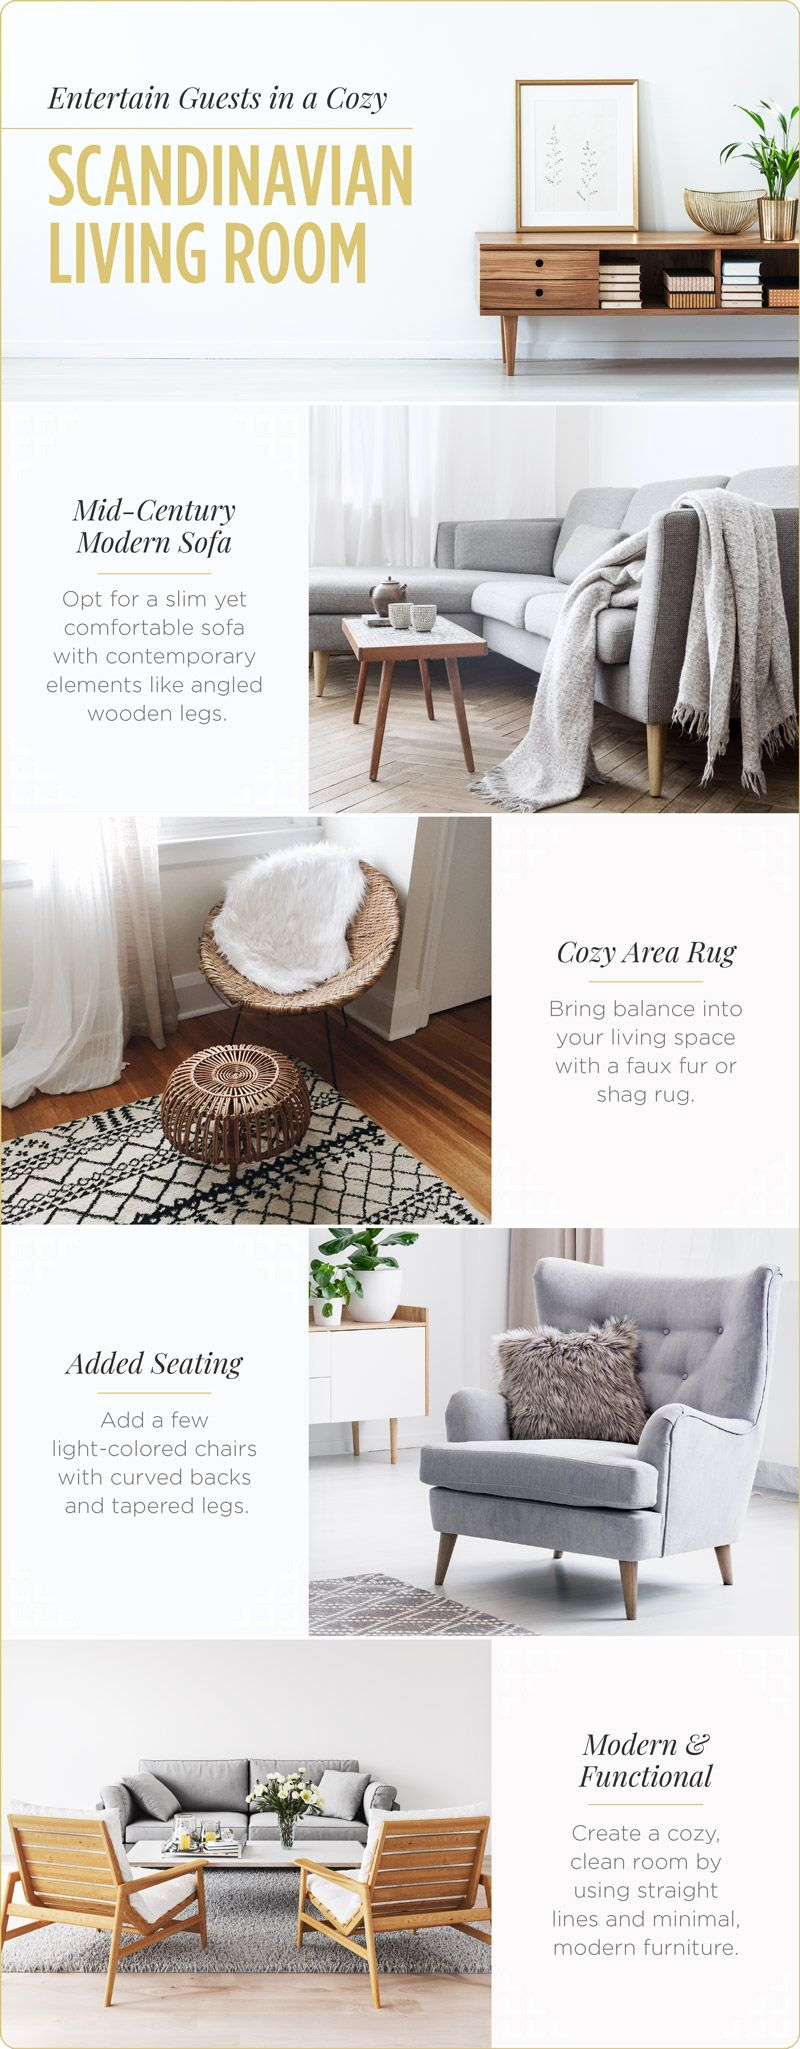 7 Scandinavian Design Principles And How To Use Them Living Room Scandinavian Scandinavian Decor Living Room Scandinavian Design Living Room